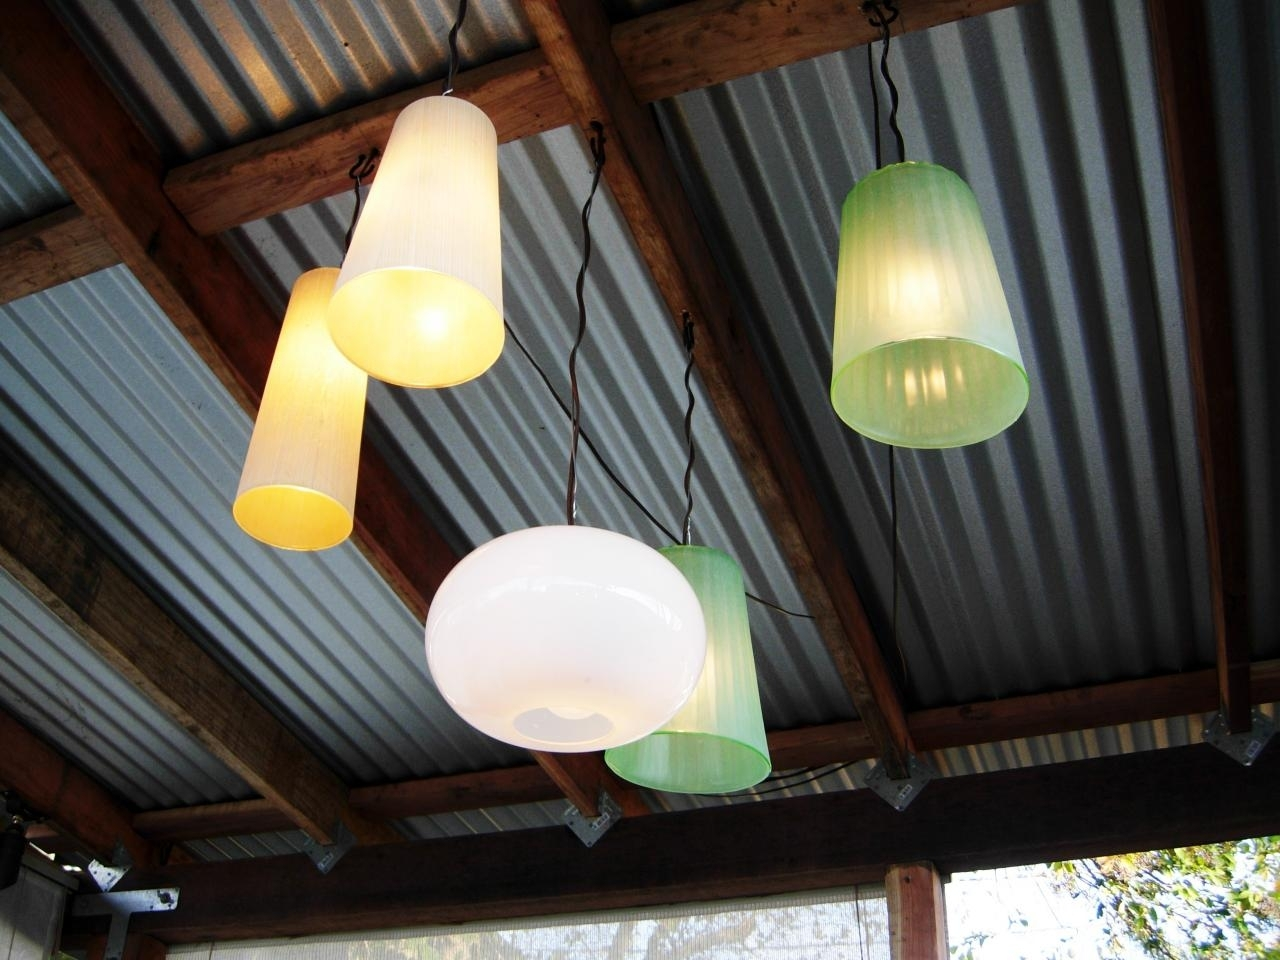 How To Make Outdoor Chandeliers | How Tos | Diy With Regard To Outdoor Hanging Lights For Gazebos (View 12 of 15)